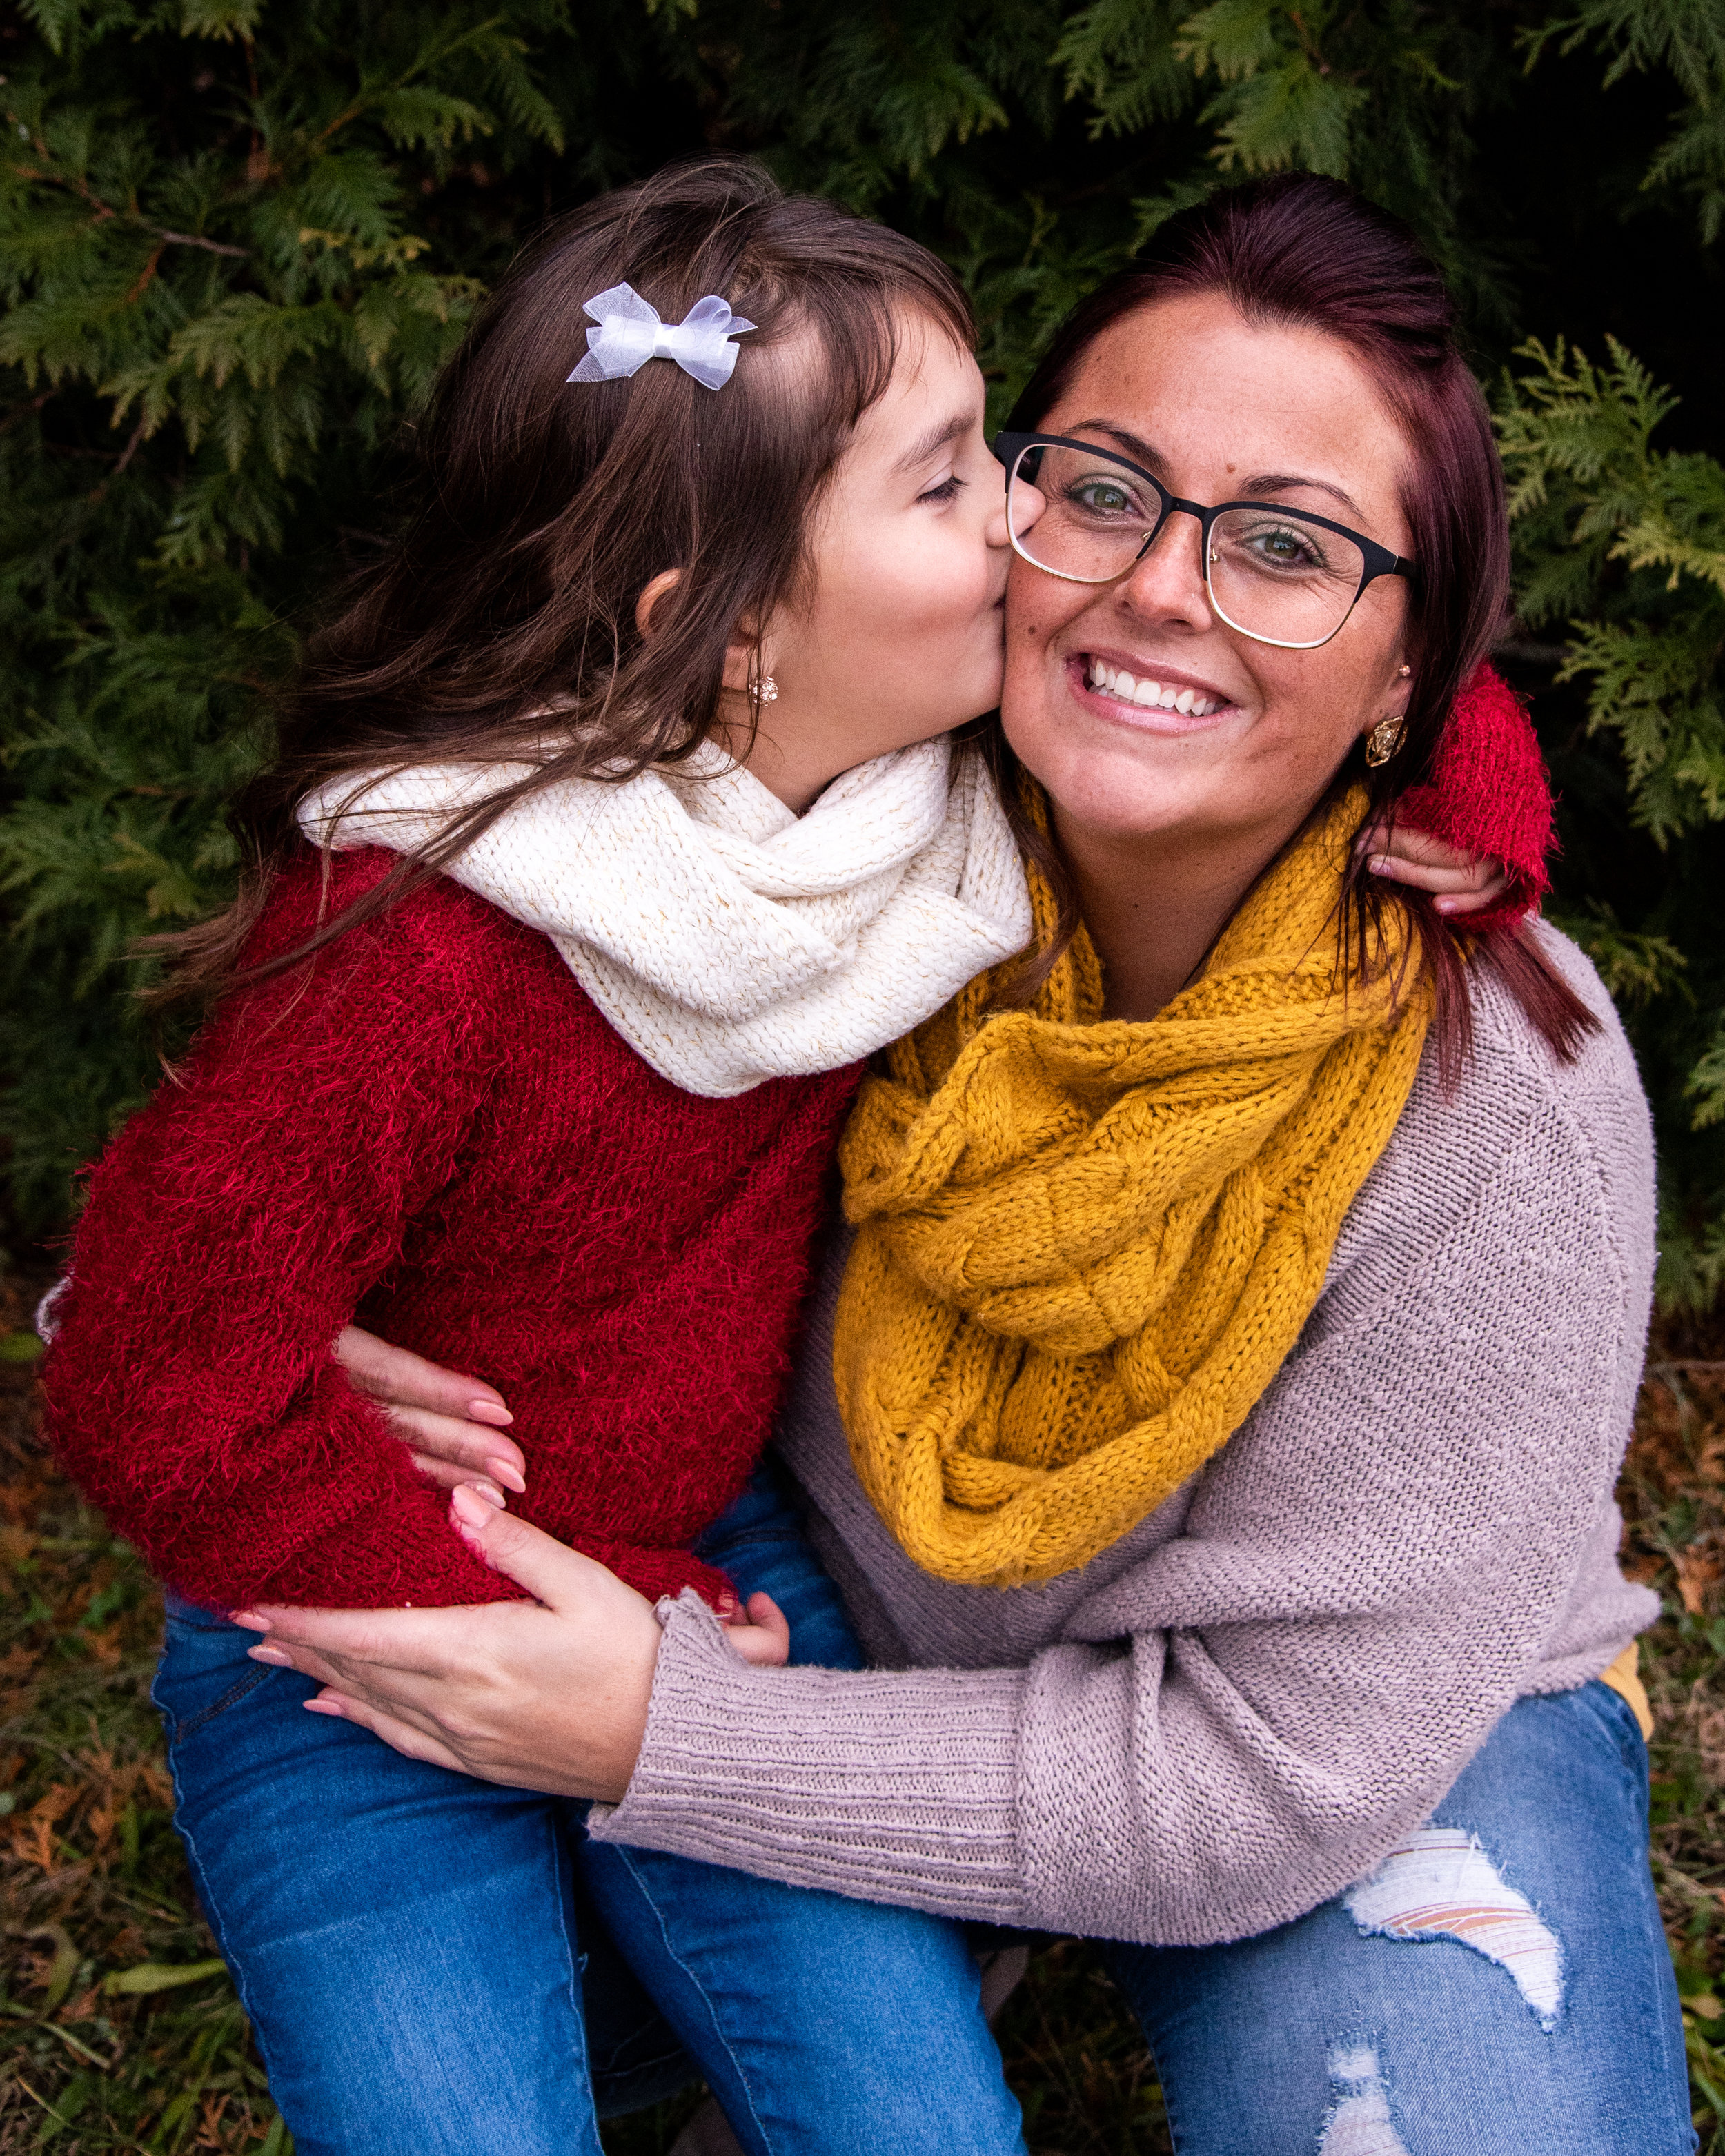 Kyla Jo Photography // Muncie, Indiana // Family Photos // Christmas Photos // Mother and Daughter // Midwest Photographer // Muncie Indiana Photographer